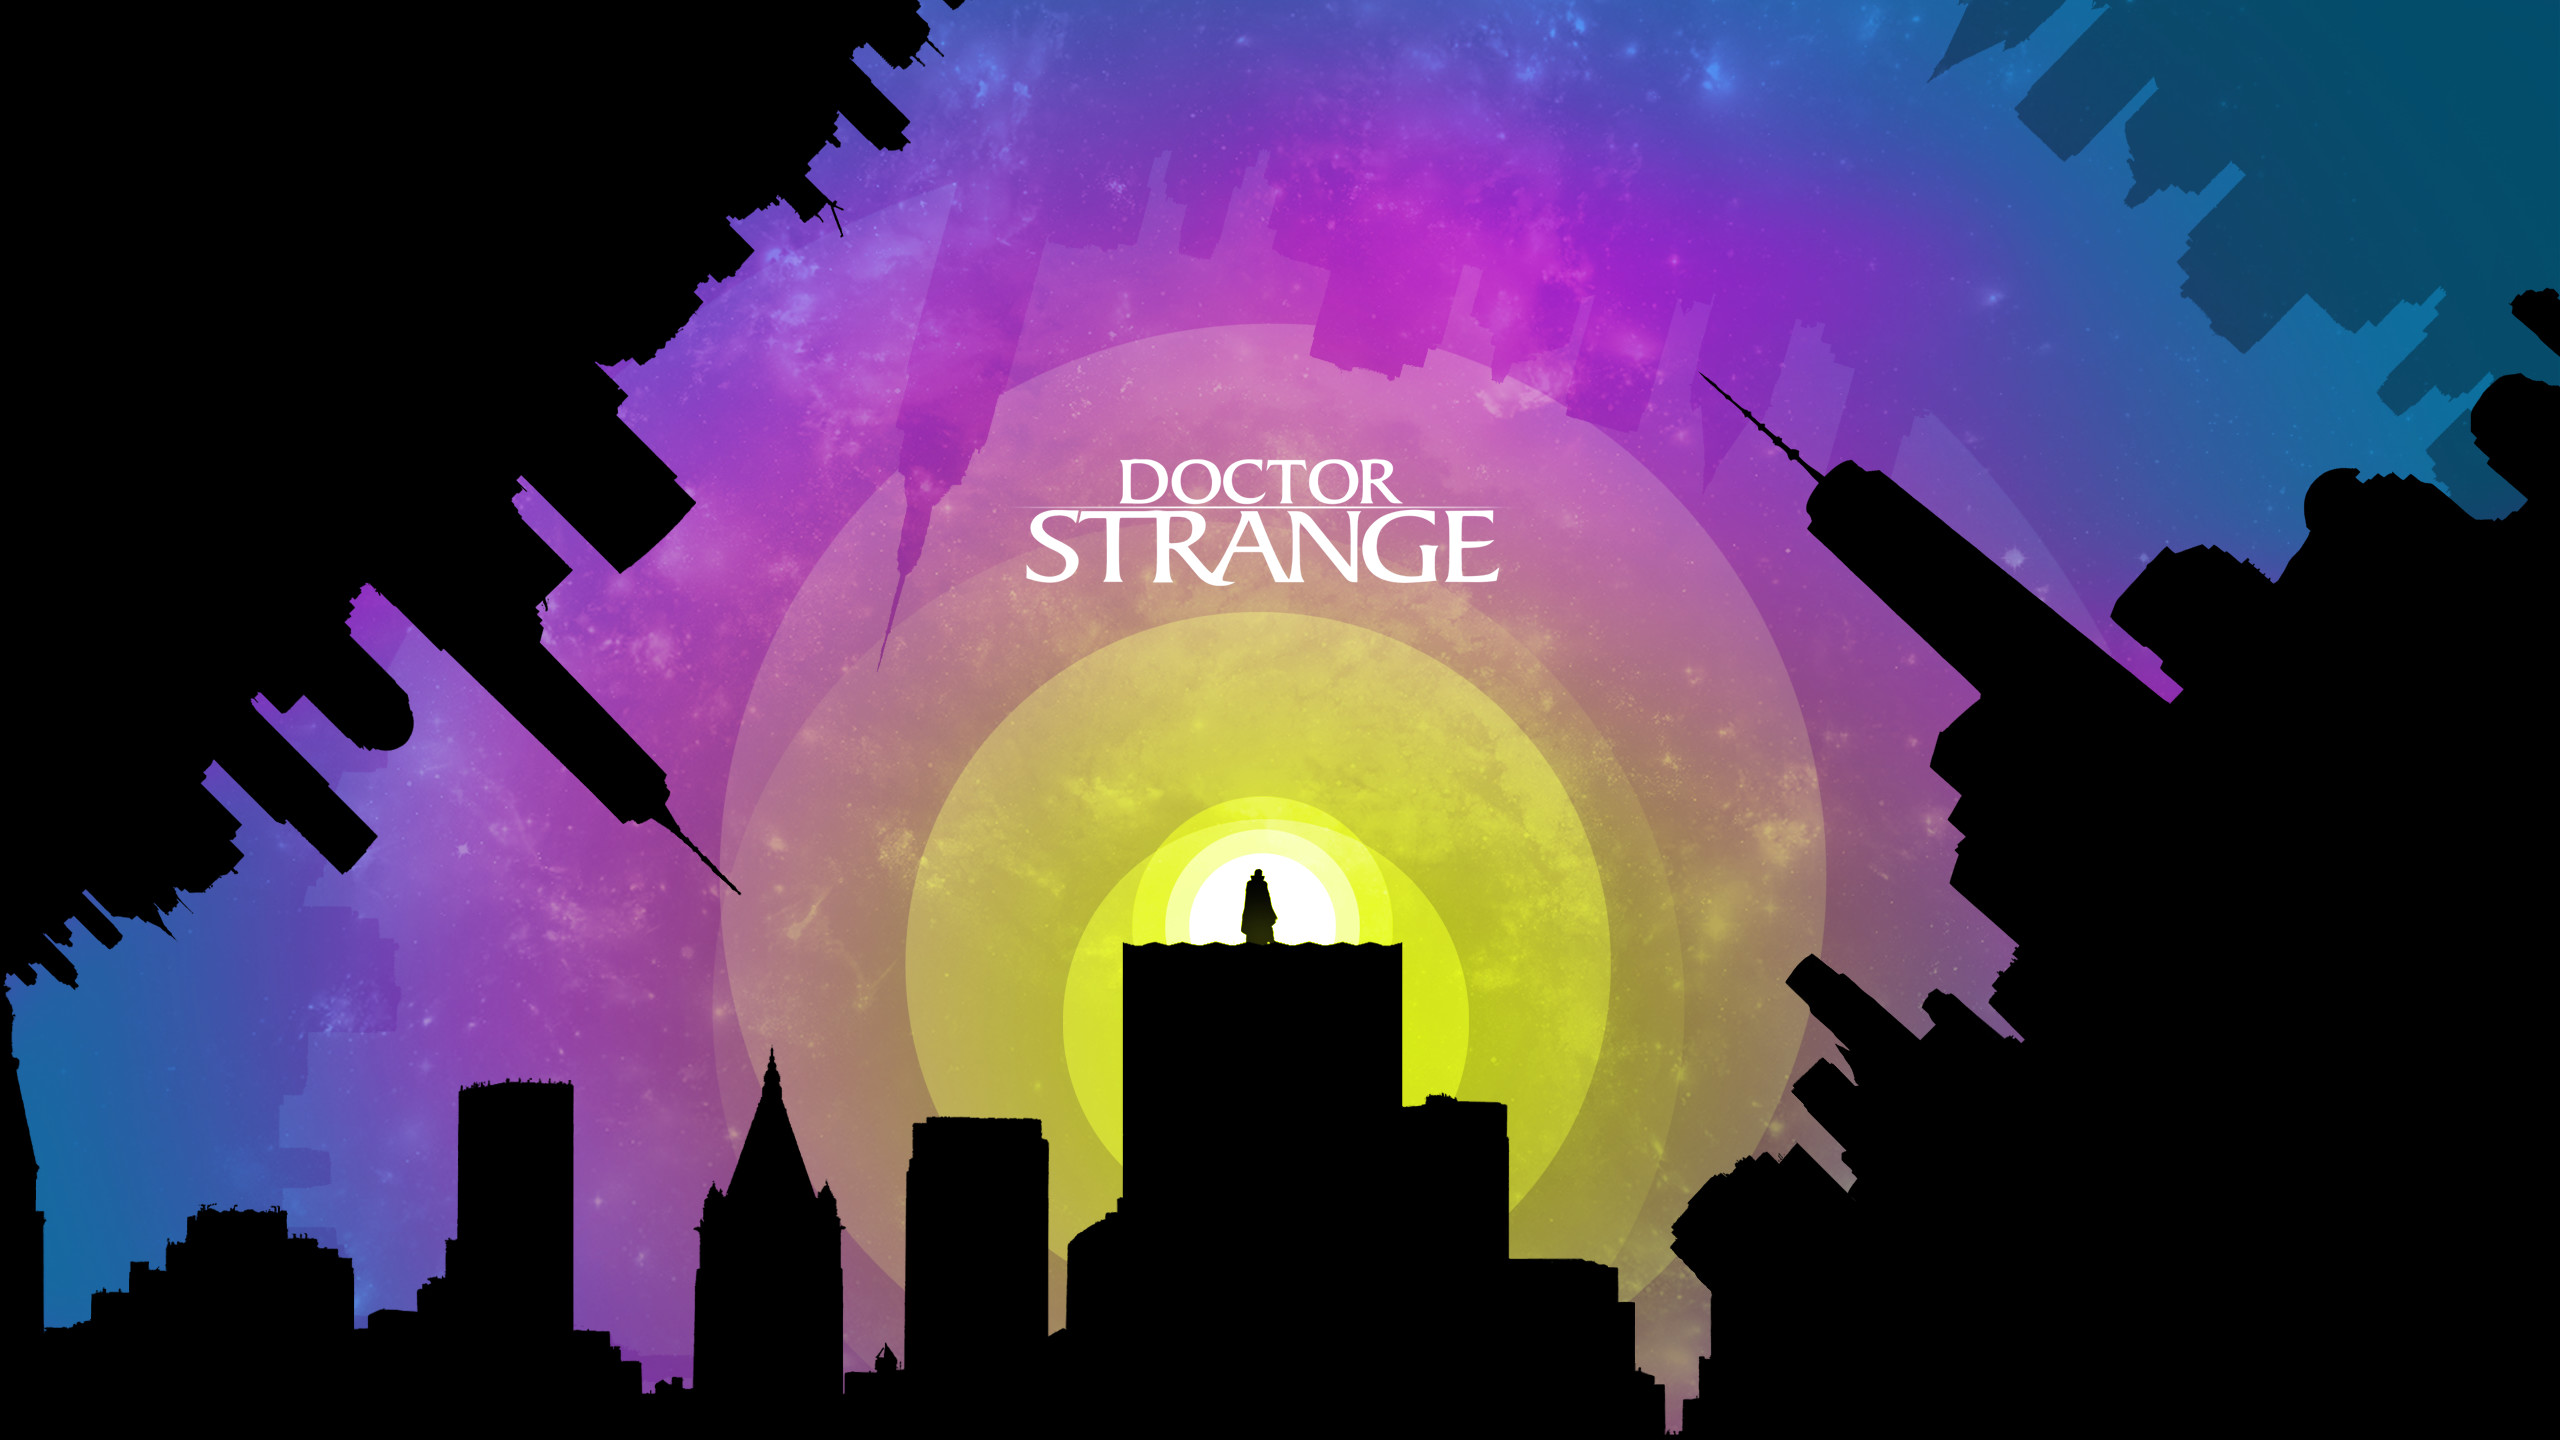 2560x1440 Doctor Strange Wallpaper by RockLou Doctor Strange Wallpaper by RockLou